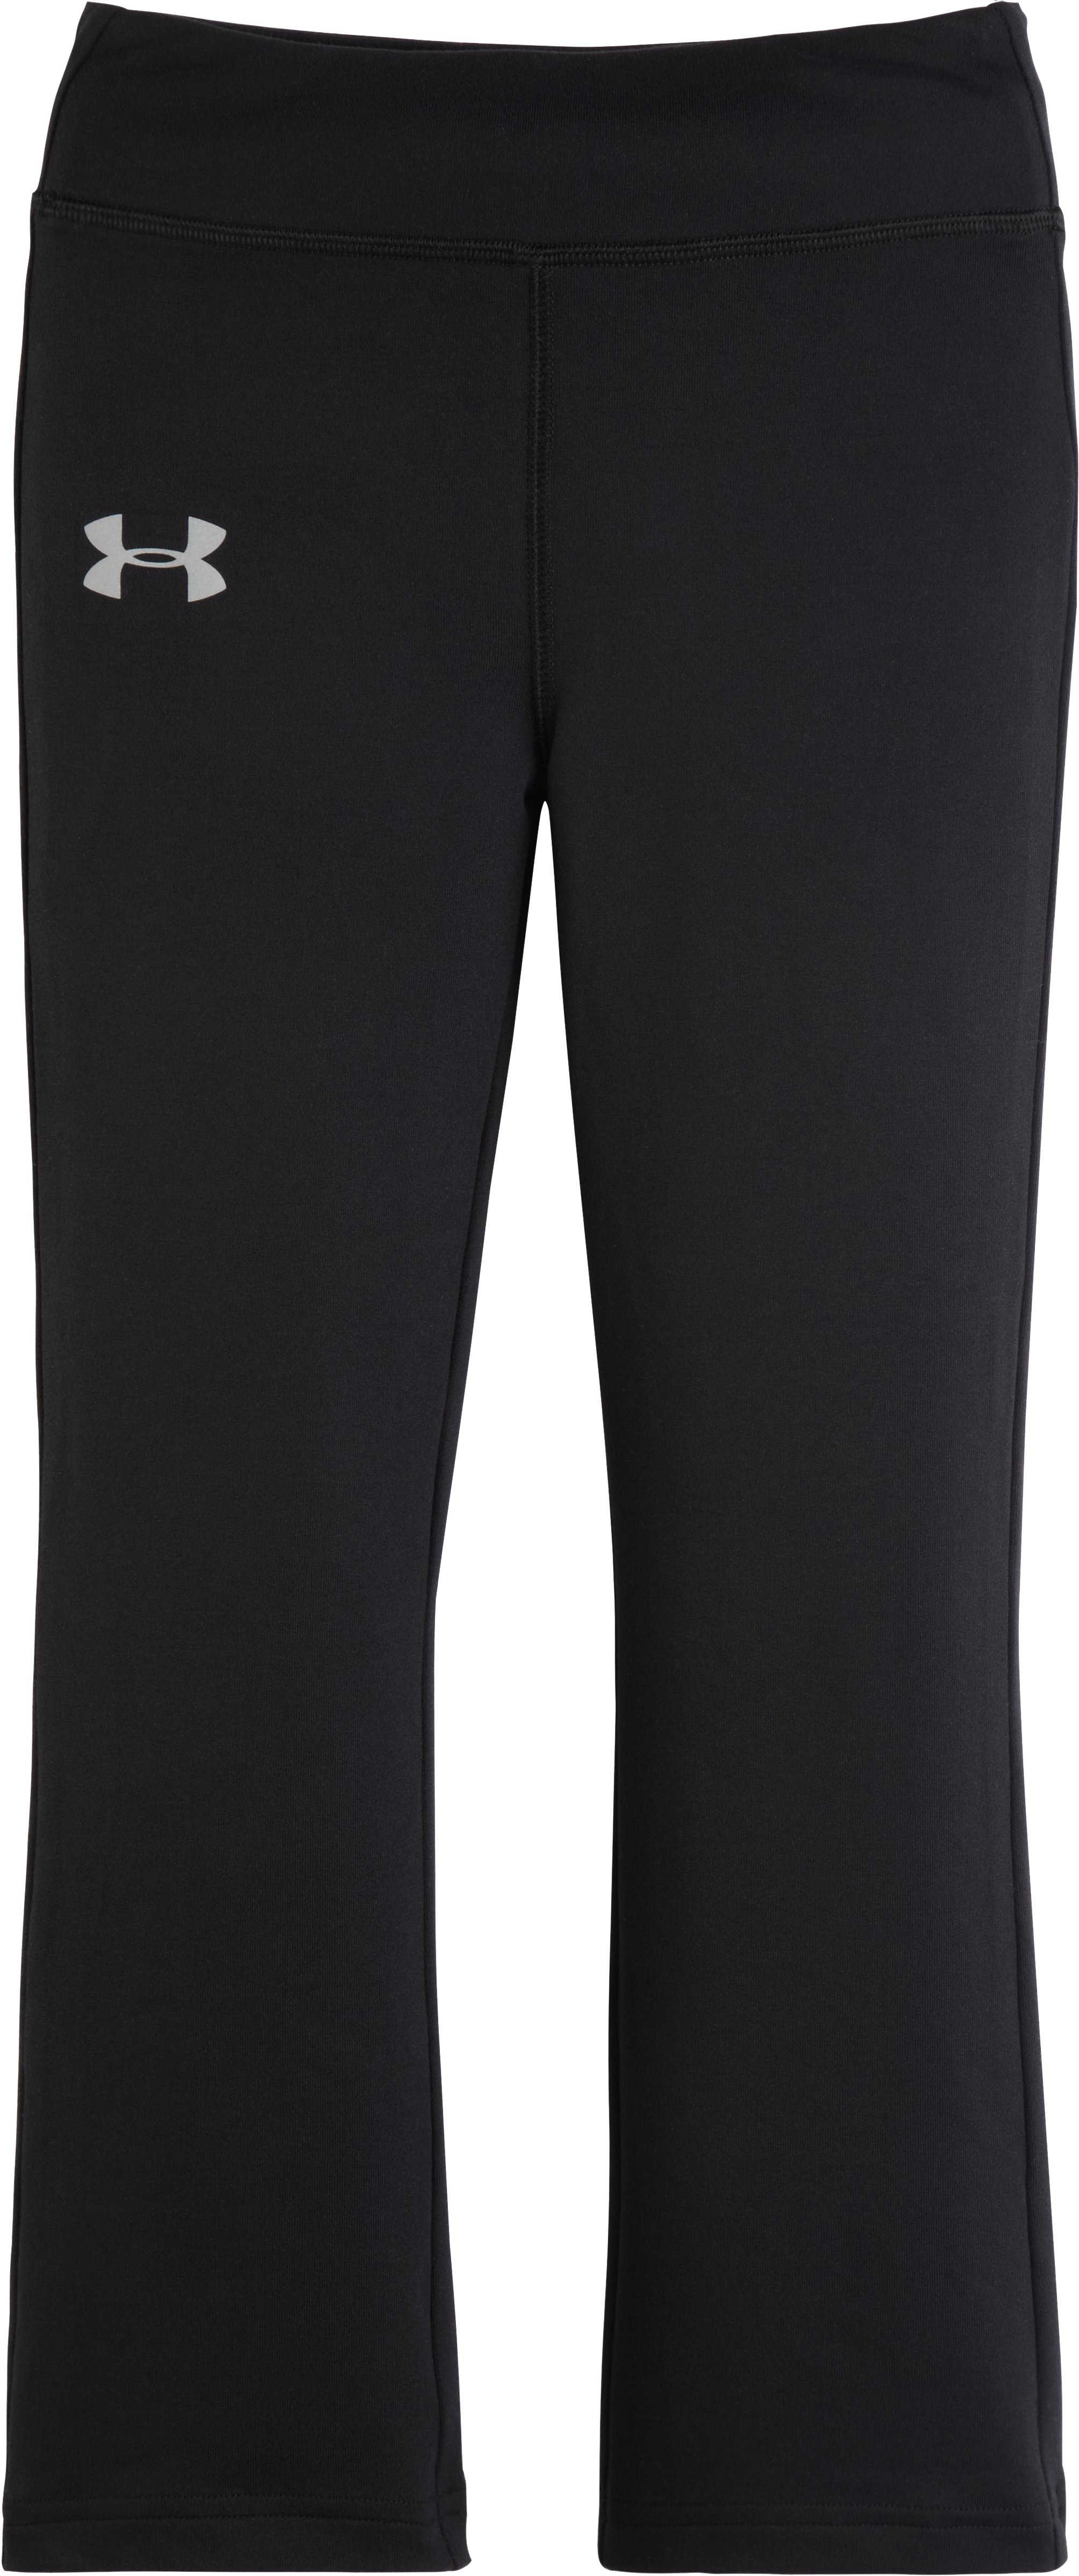 Girls' Pre-School UA Yoga Pants, Black